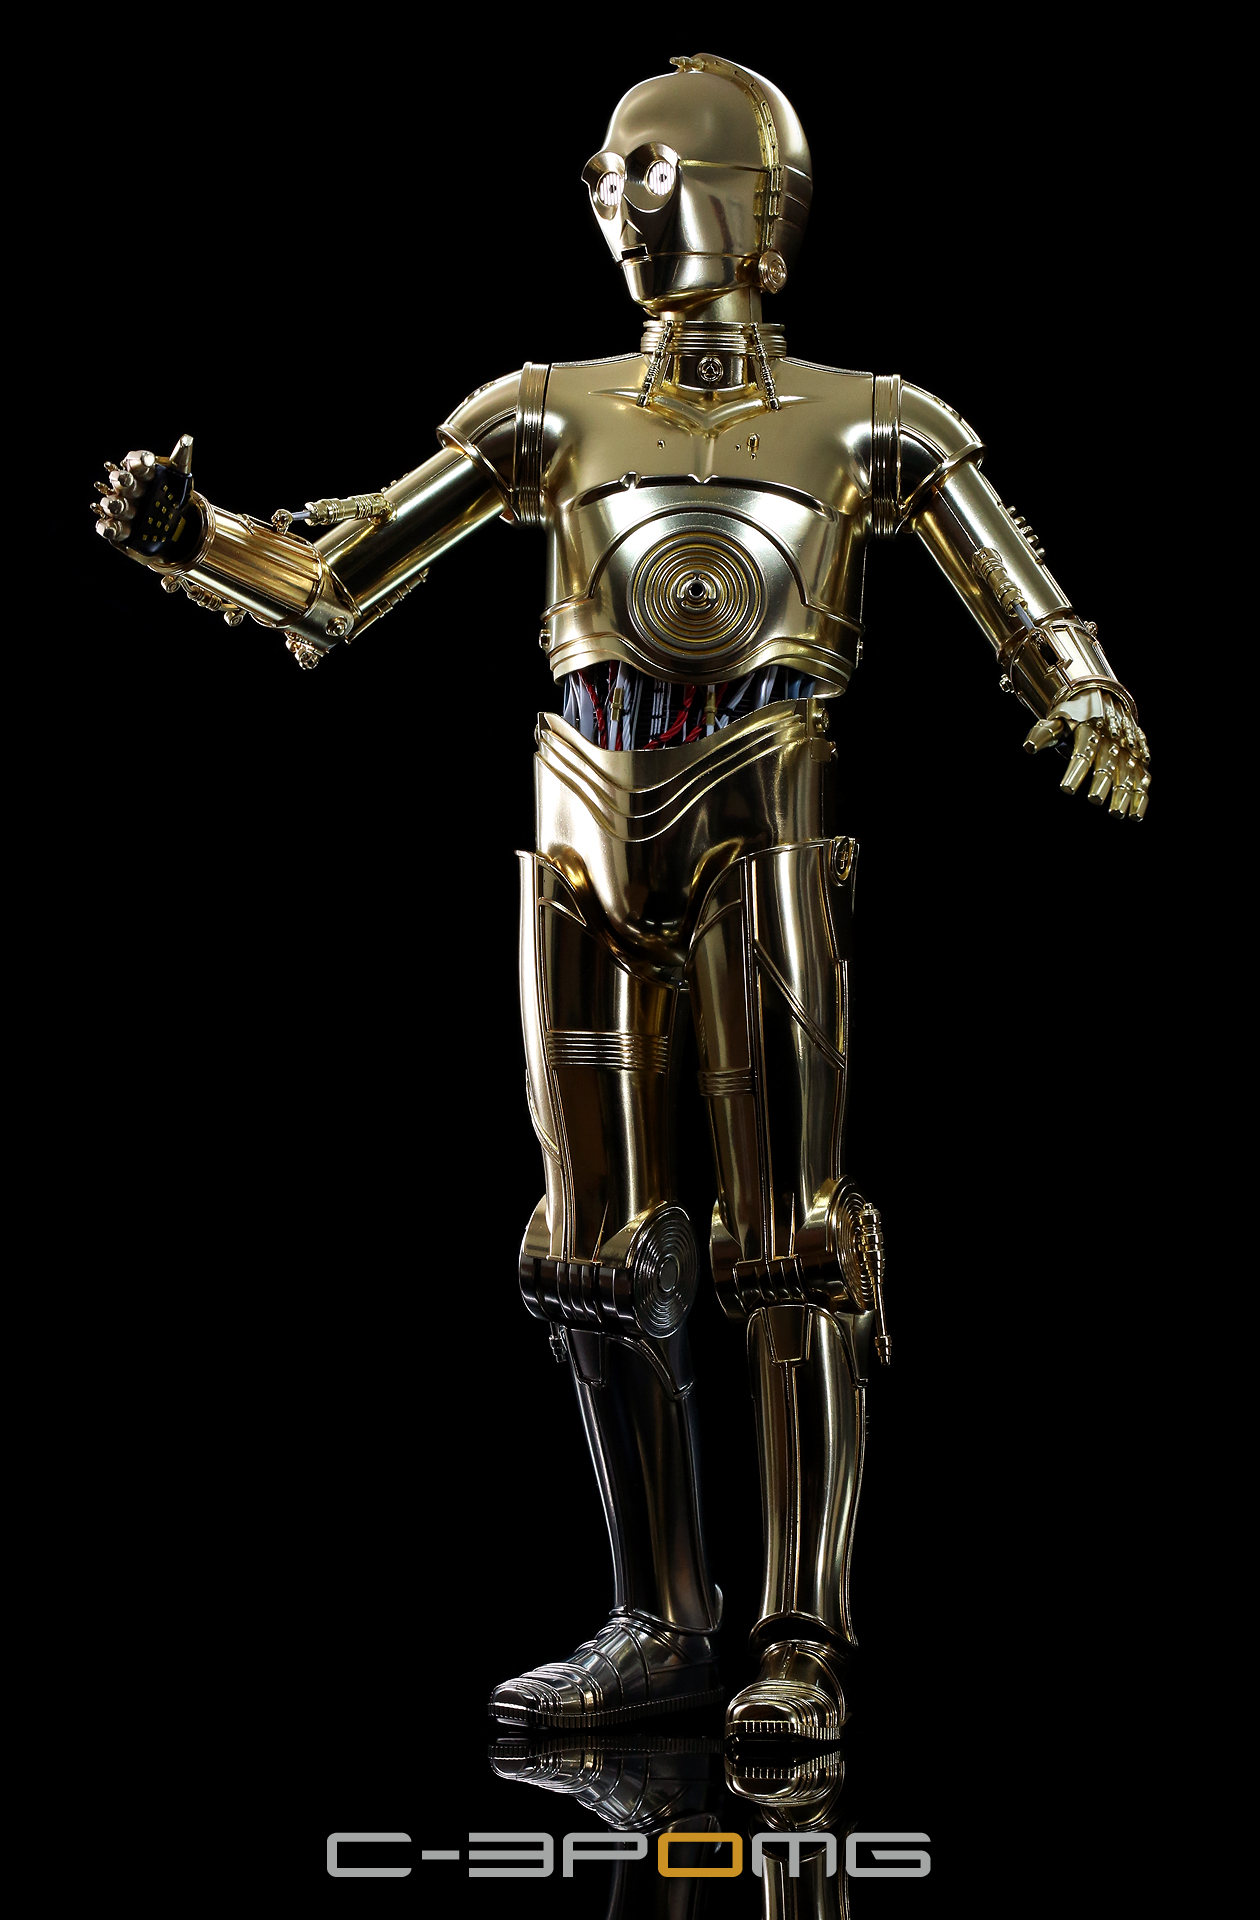 [Bandai] Star Wars: C-3PO - Perfect Model 1/6 scale - LANÇADO!!! - Página 2 C-3PO1015_zps06c457c1